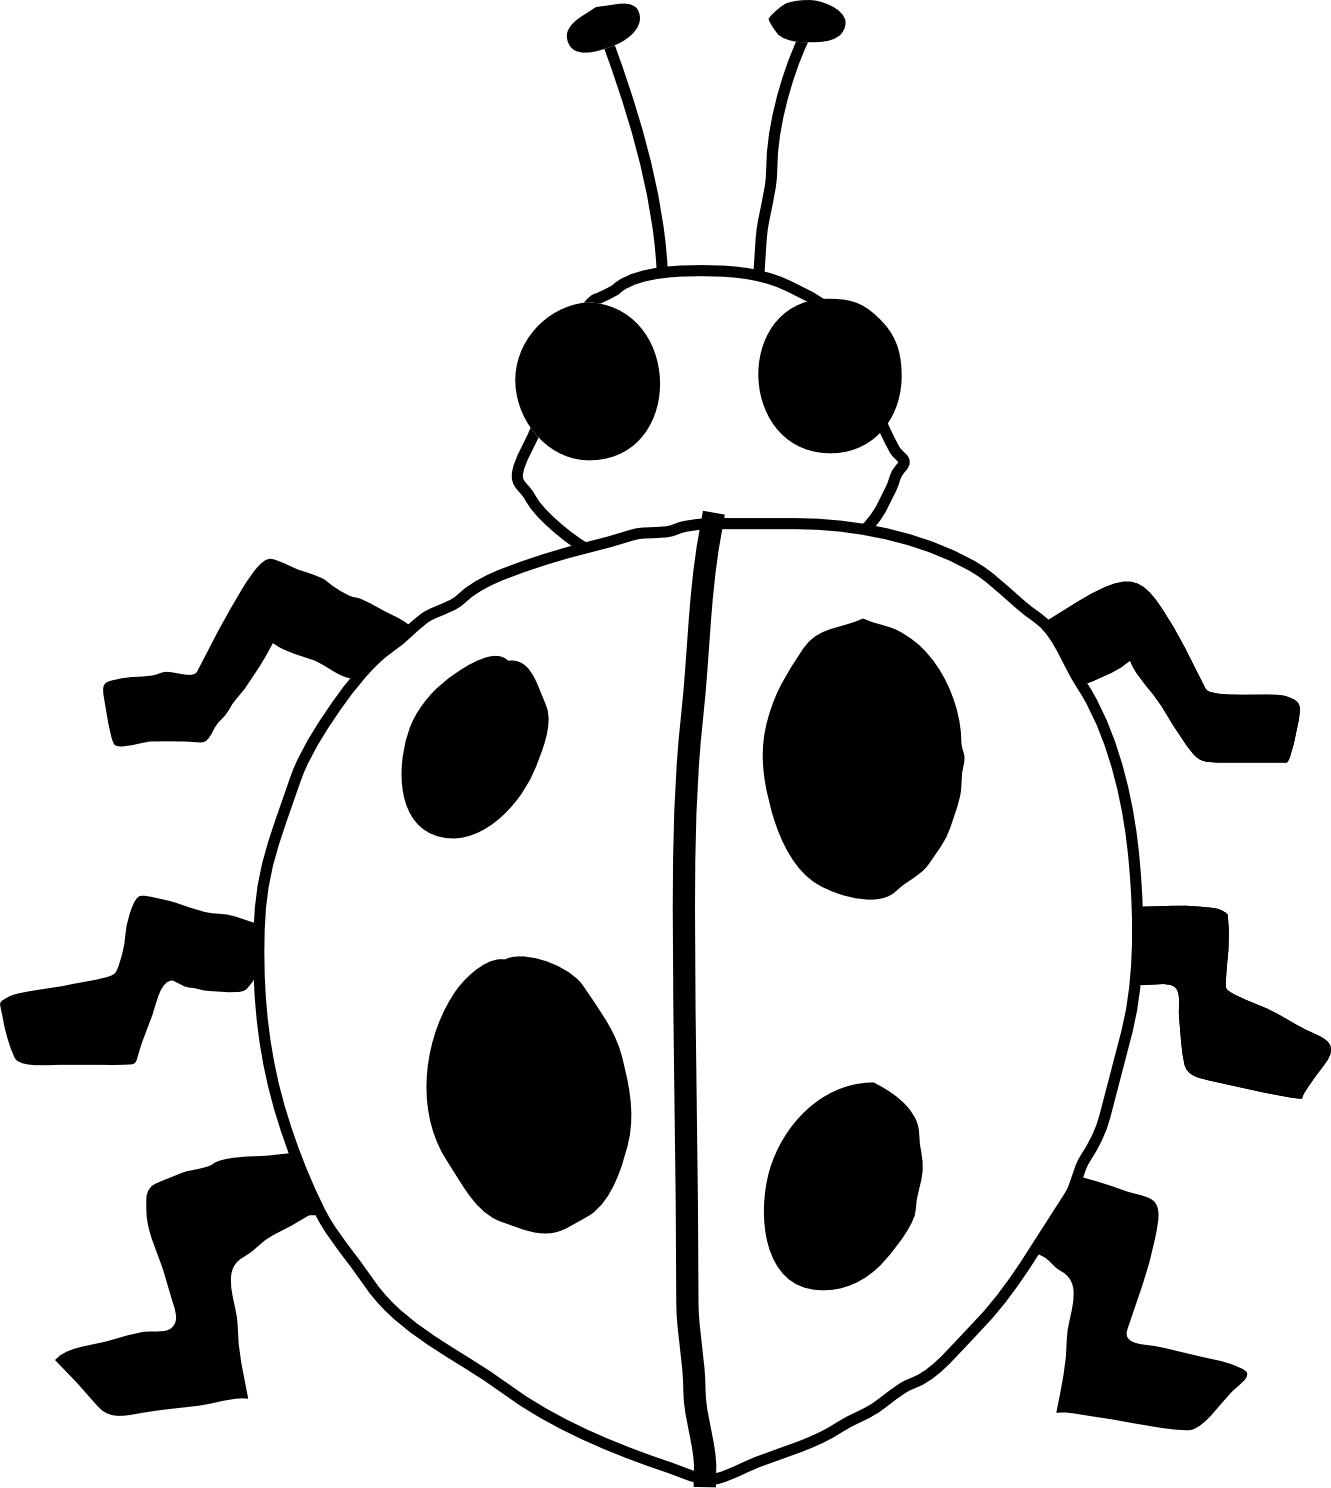 Worm clipart ring worm. Ladybug black white line